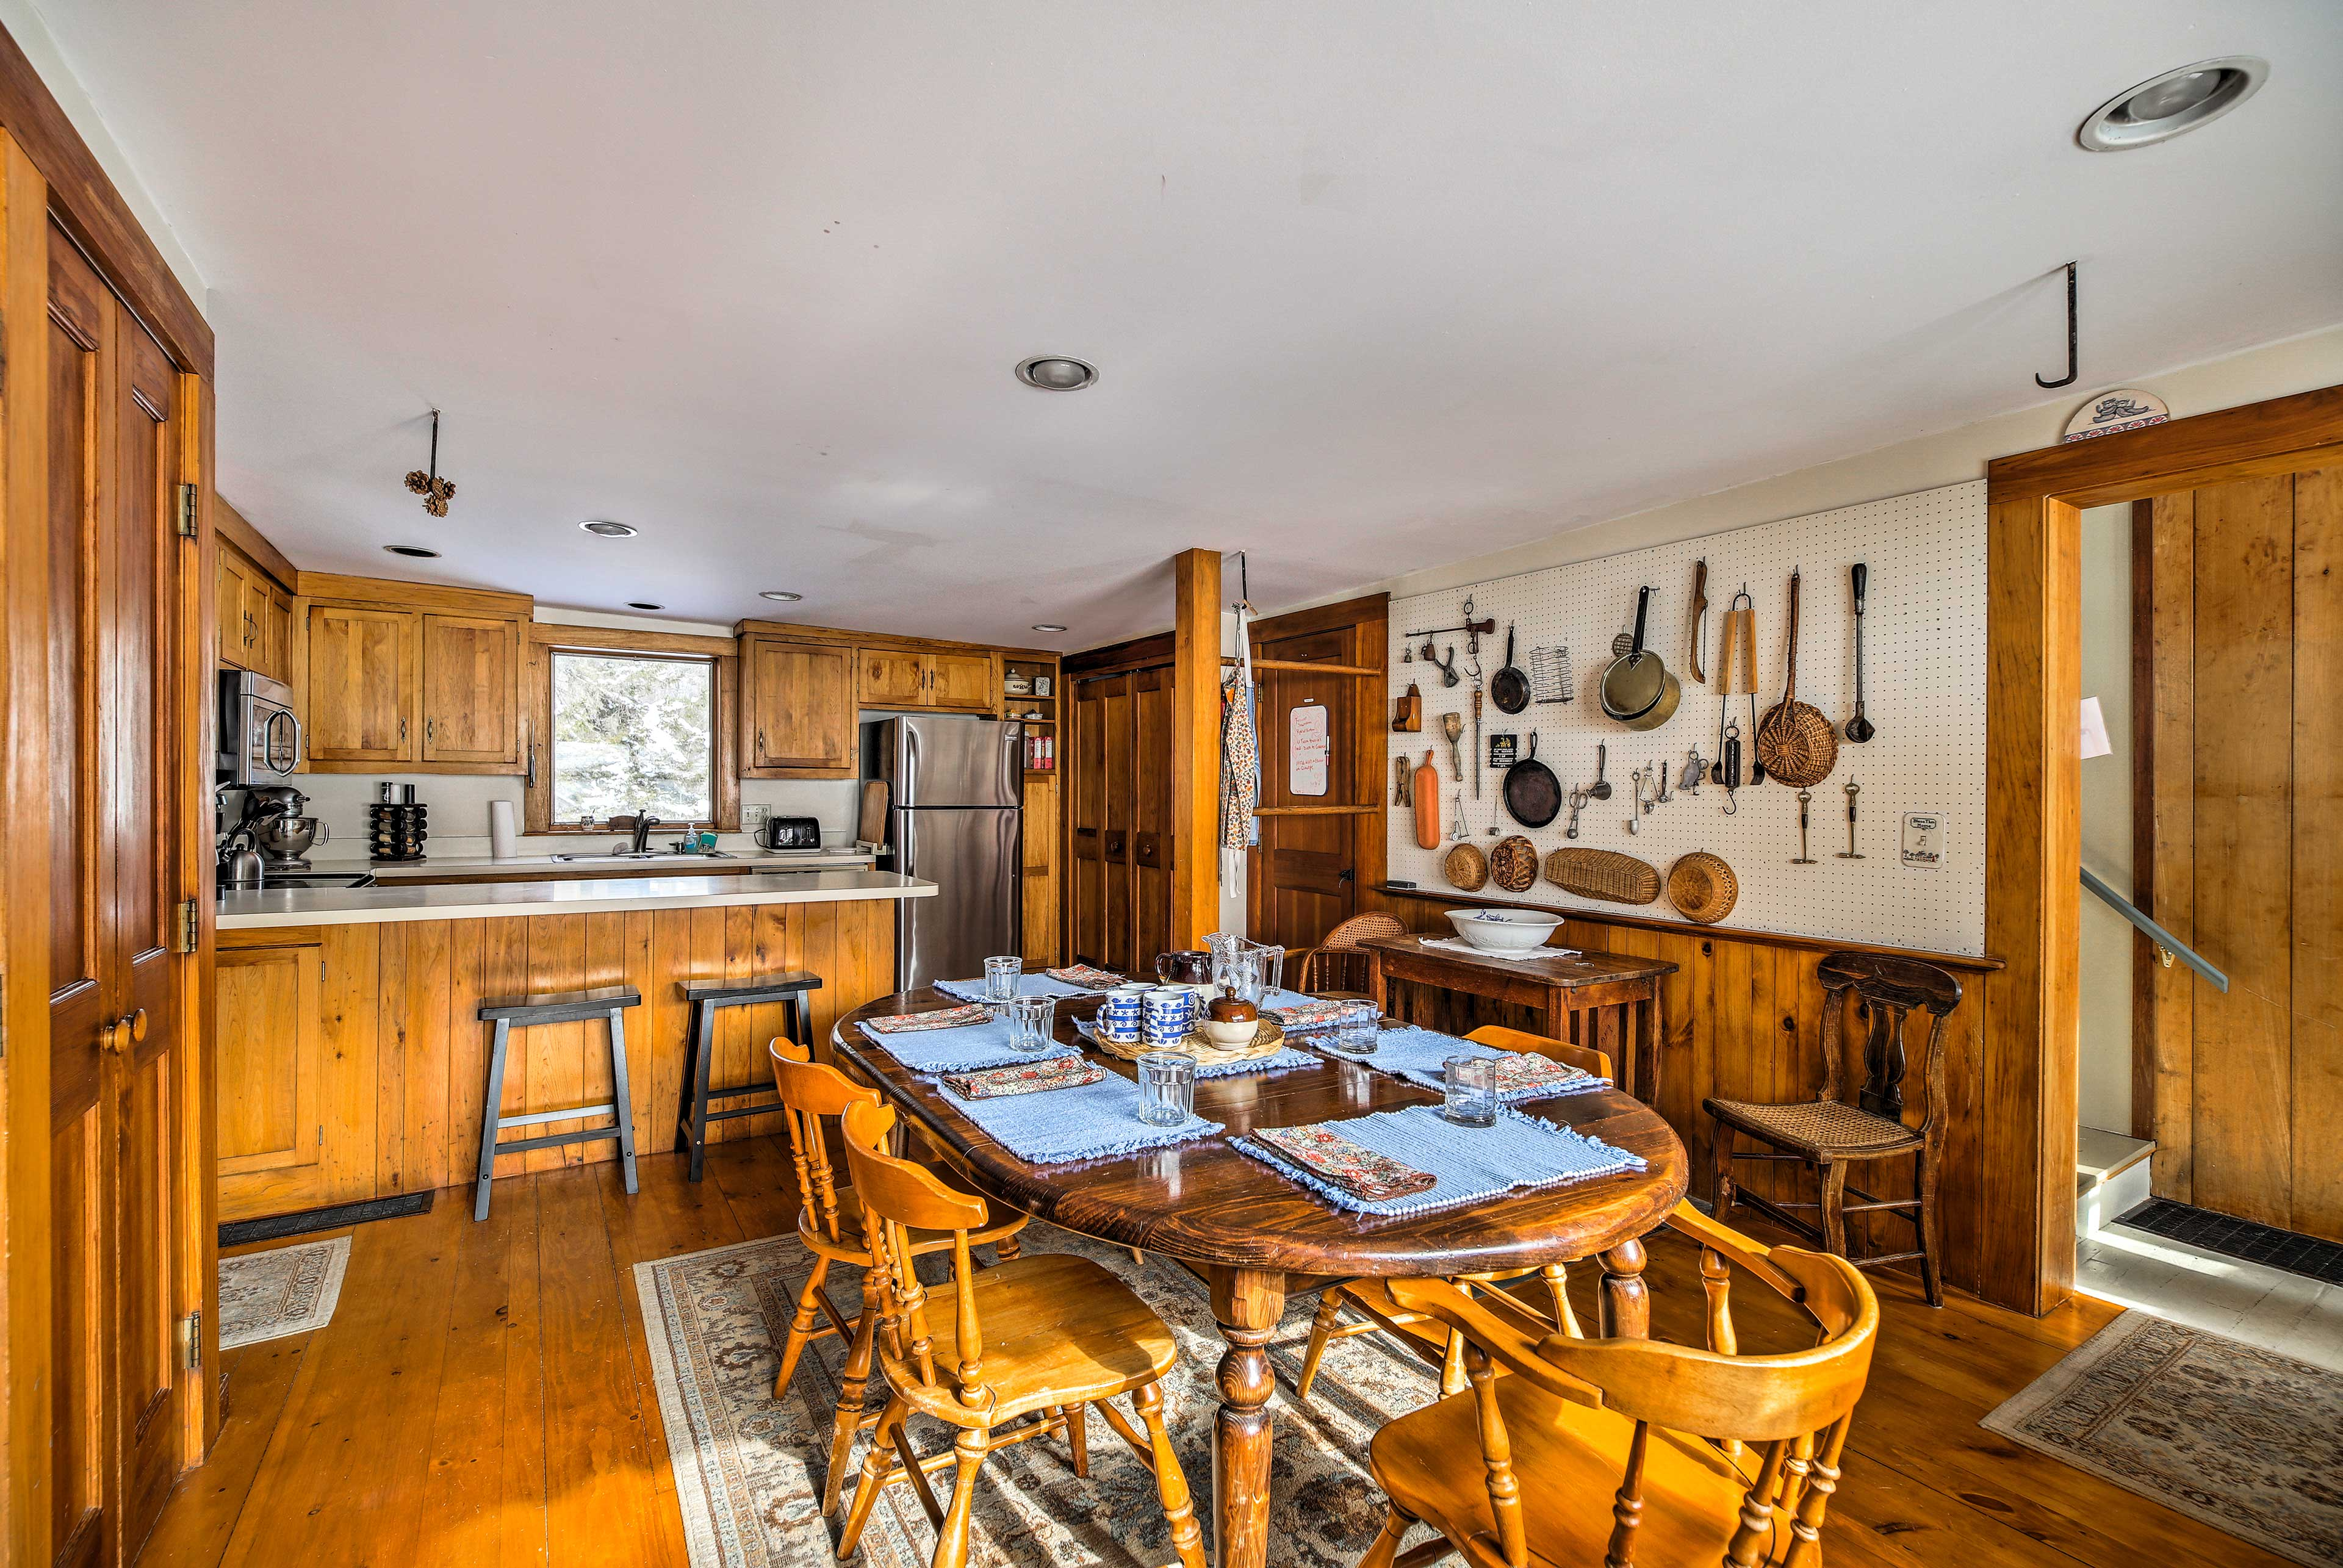 With wooden accents and a rustic feel, this kitchen transports you back in time.